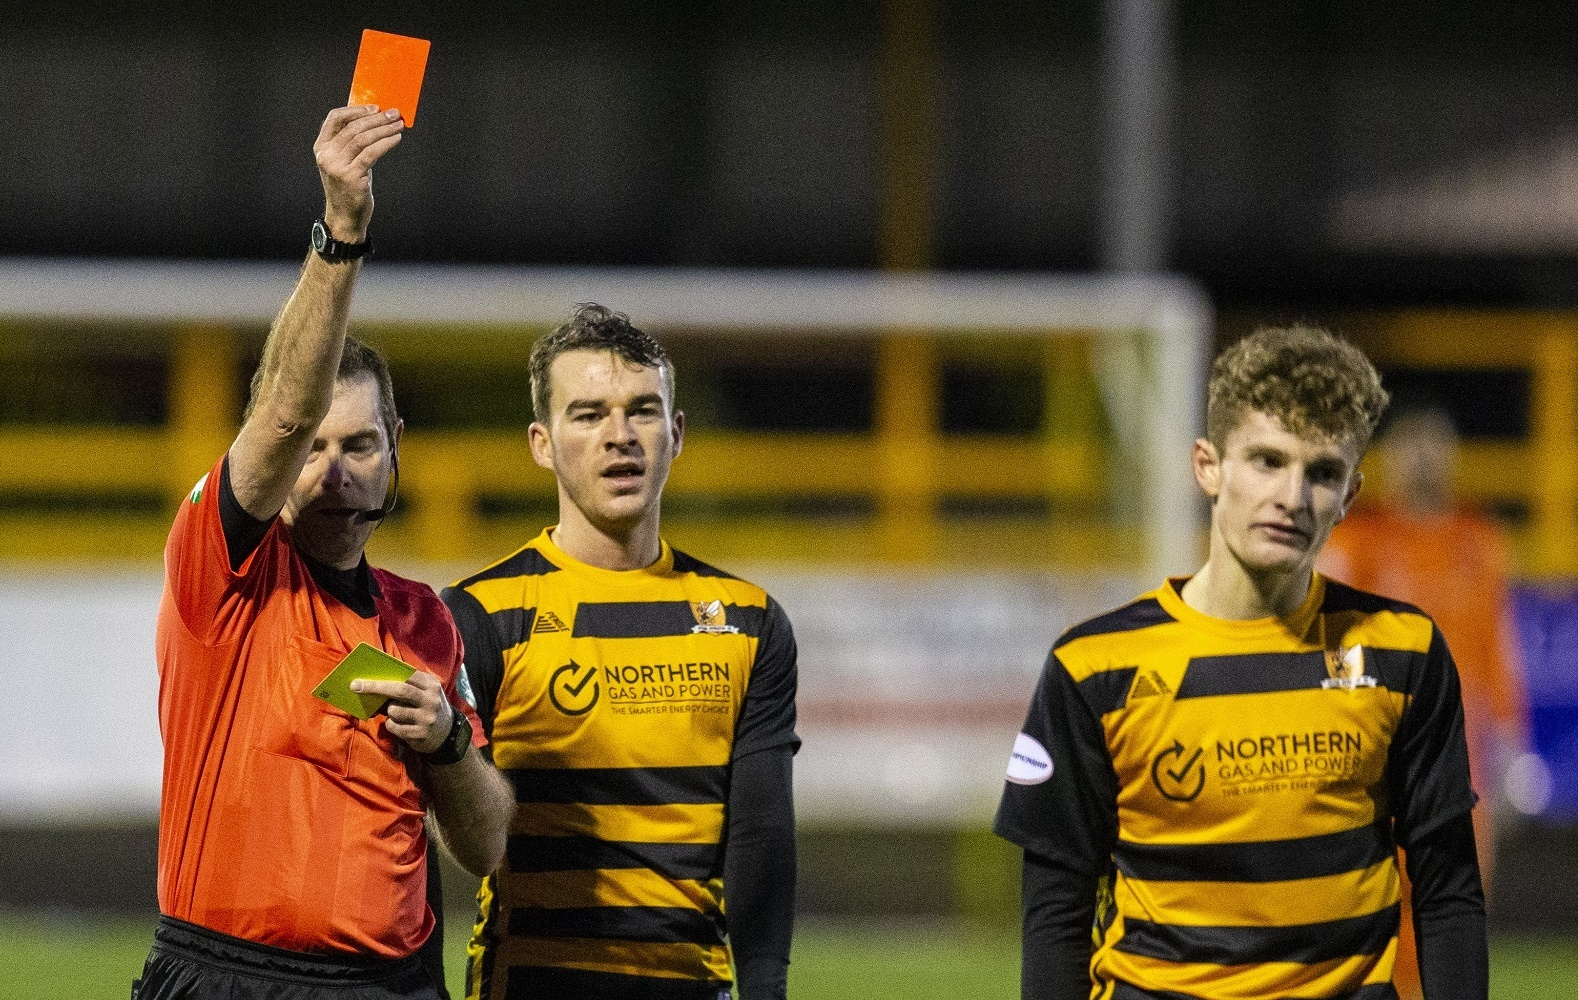 Hearts take all three points from Alloa in weekend's clash